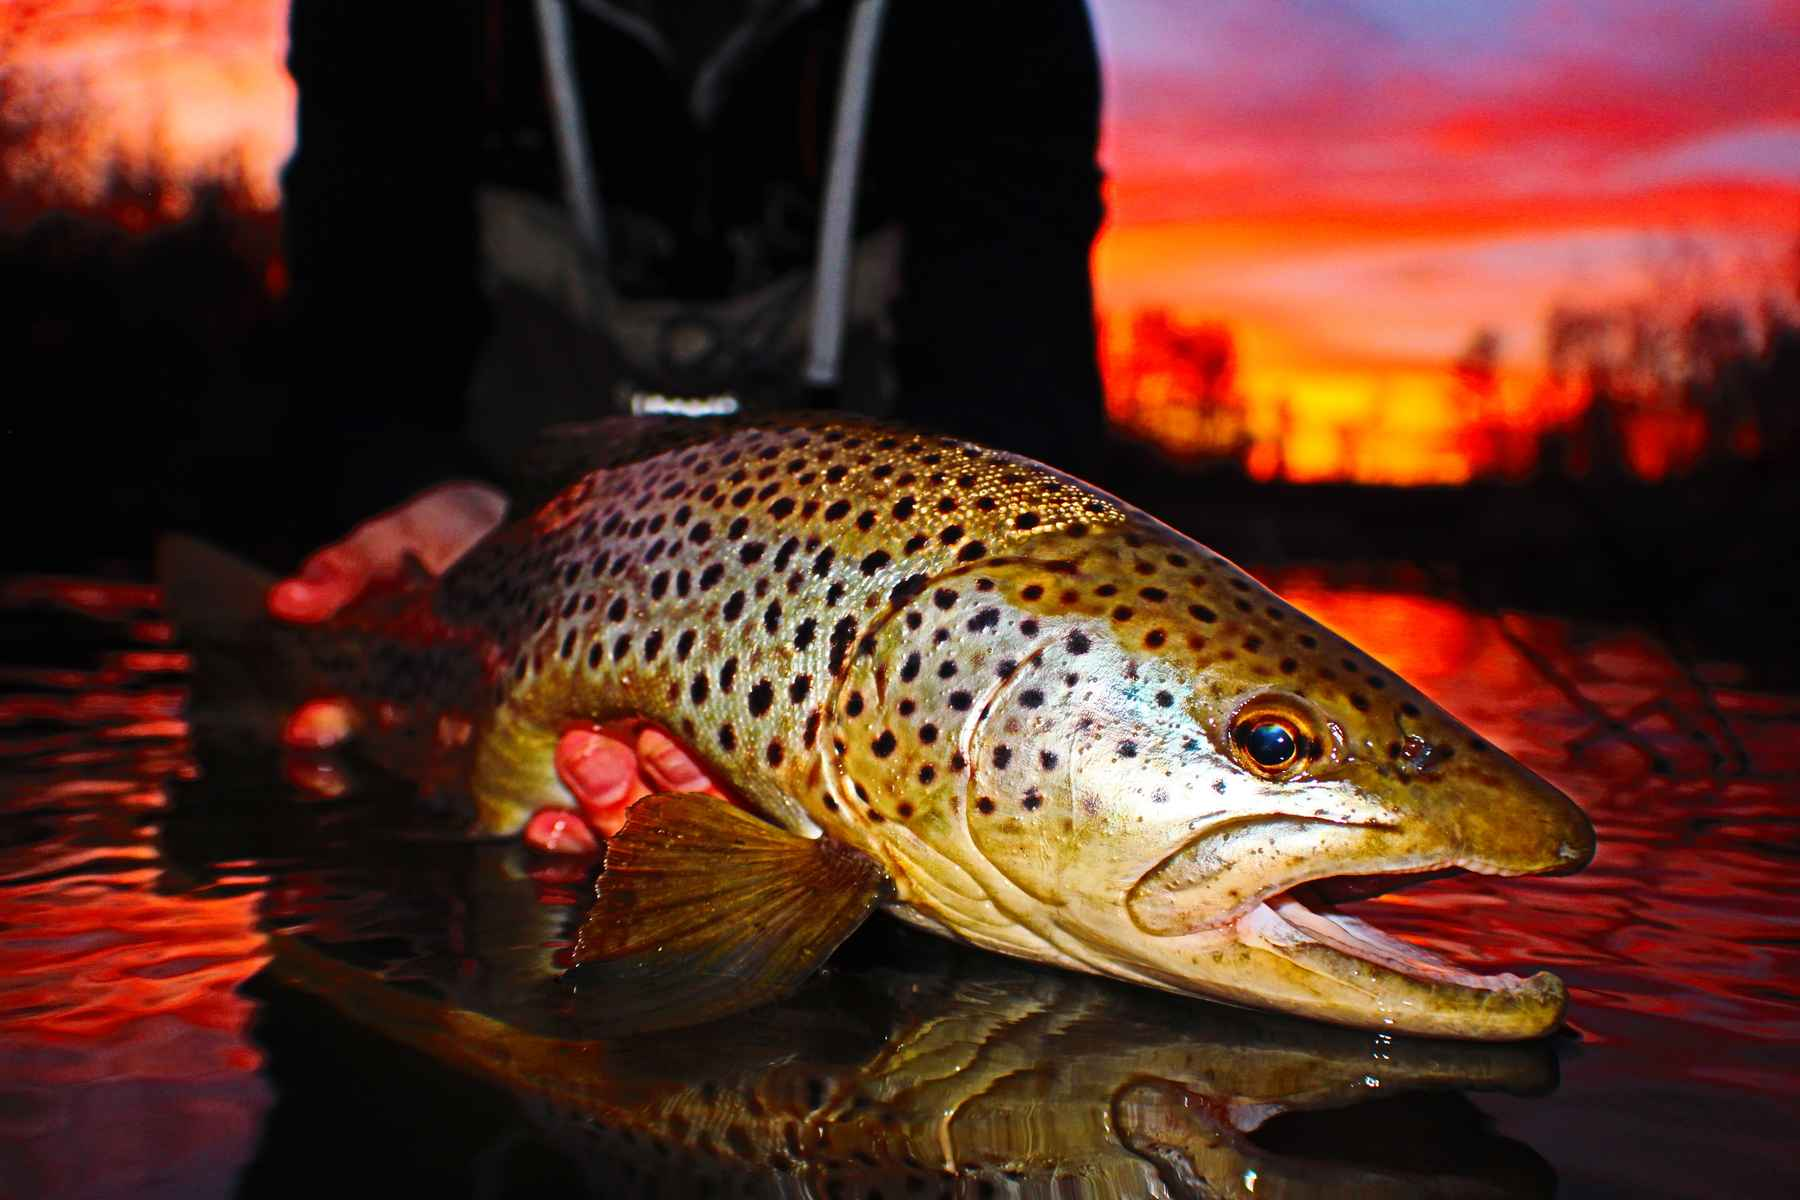 Fly fishing Q&A: Mousing at night | Hatch Magazine - Fly